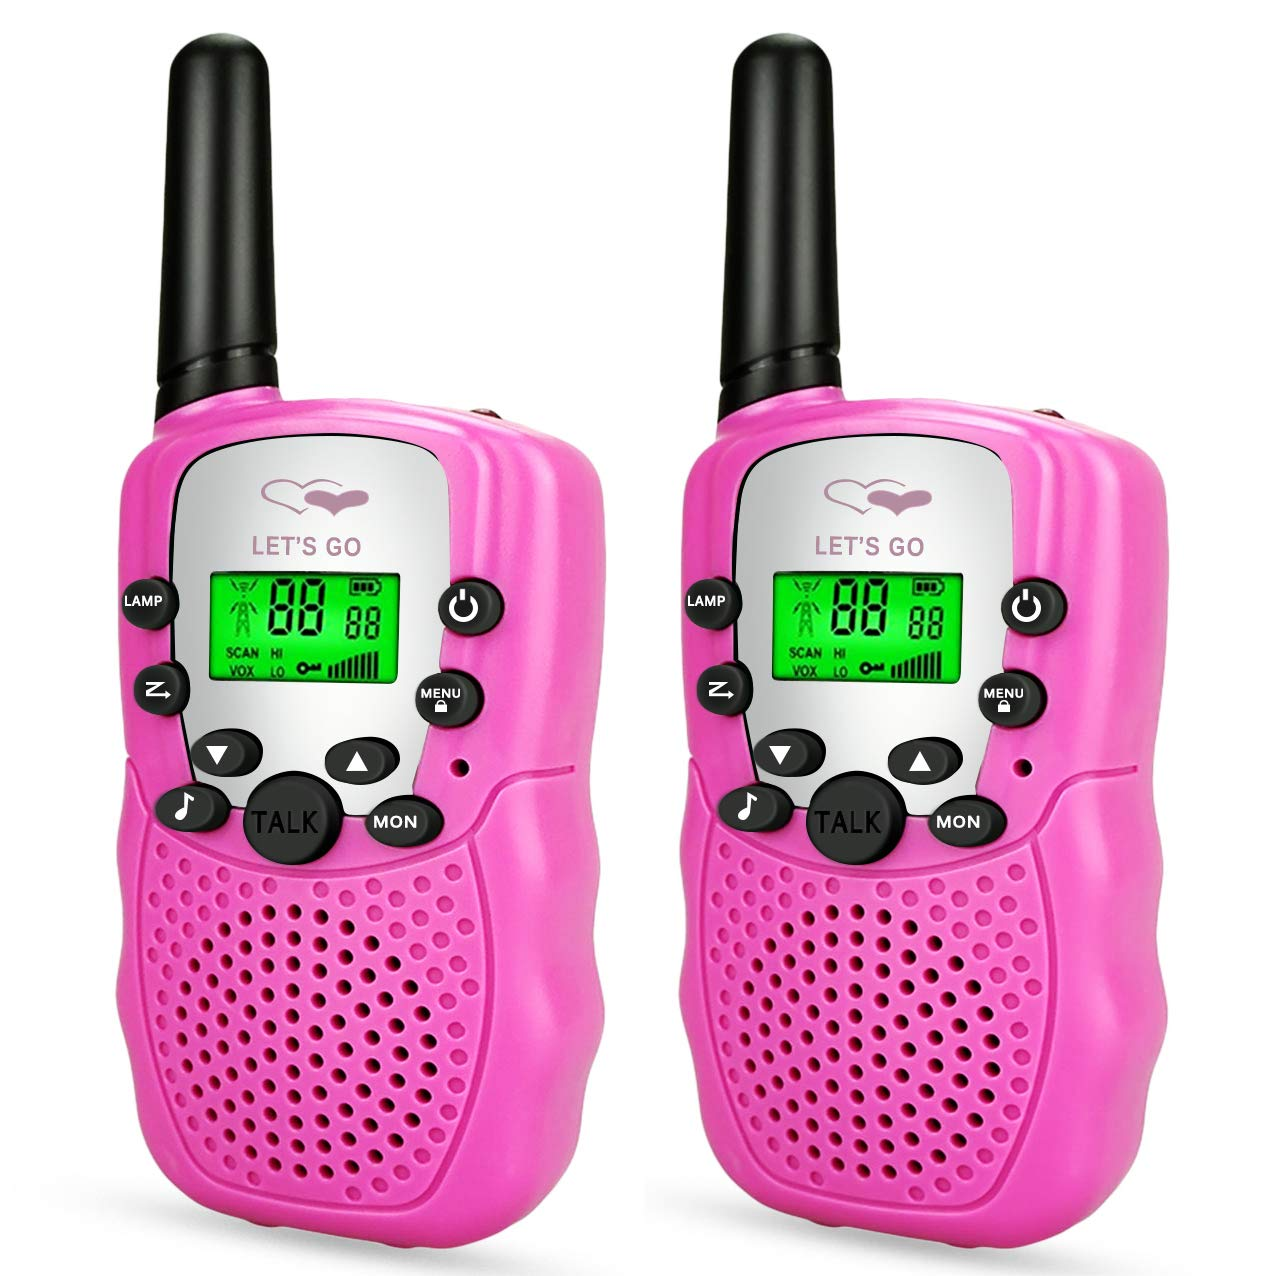 Christmas Gift Ideas For Girls Age 12.Gifts For 3 12 Year Old Girls Tisy Long Range Two Way Radios For Girls Christmas Birthday Gifts For Teen Girls Toys For 3 12 Year Old Boys Birthday